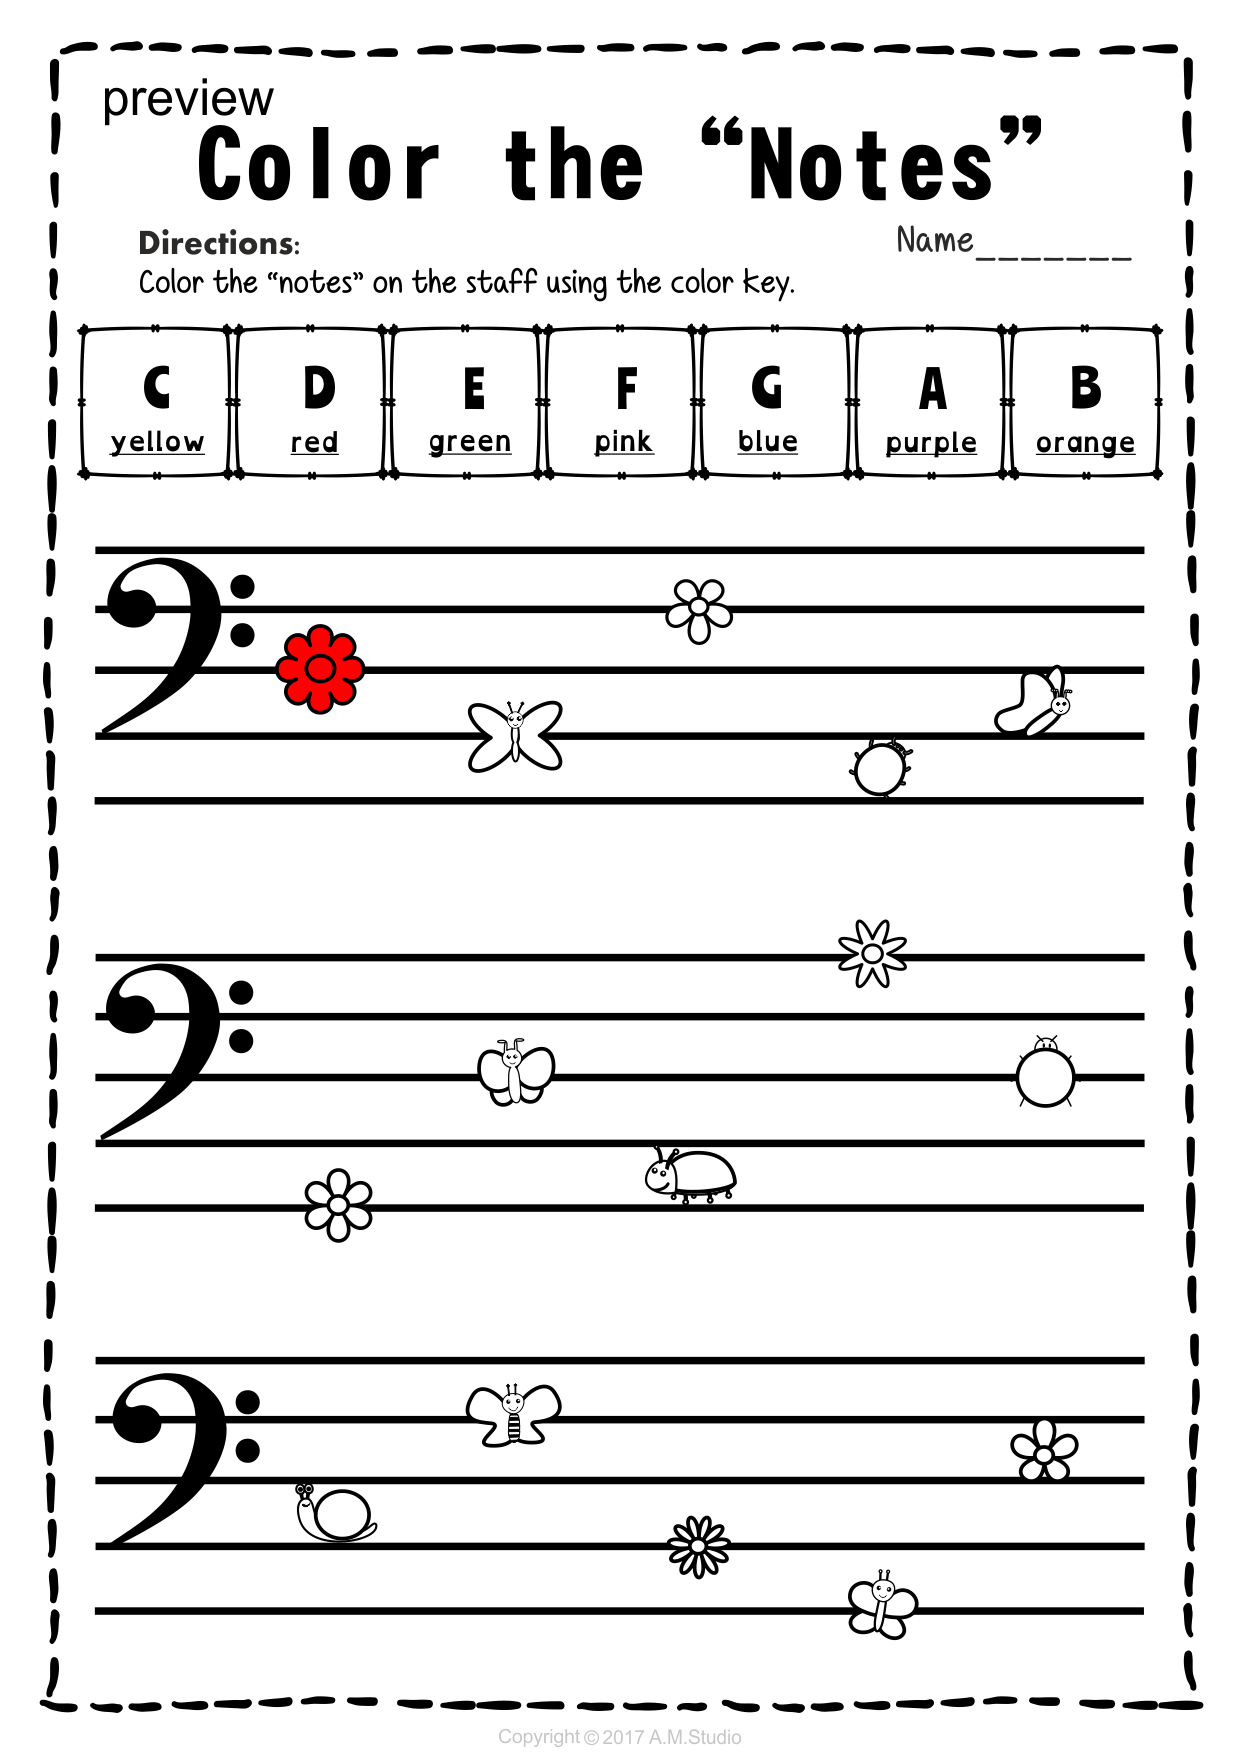 Bass Clef Note Naming Worksheets For Spring8 Anastasiya